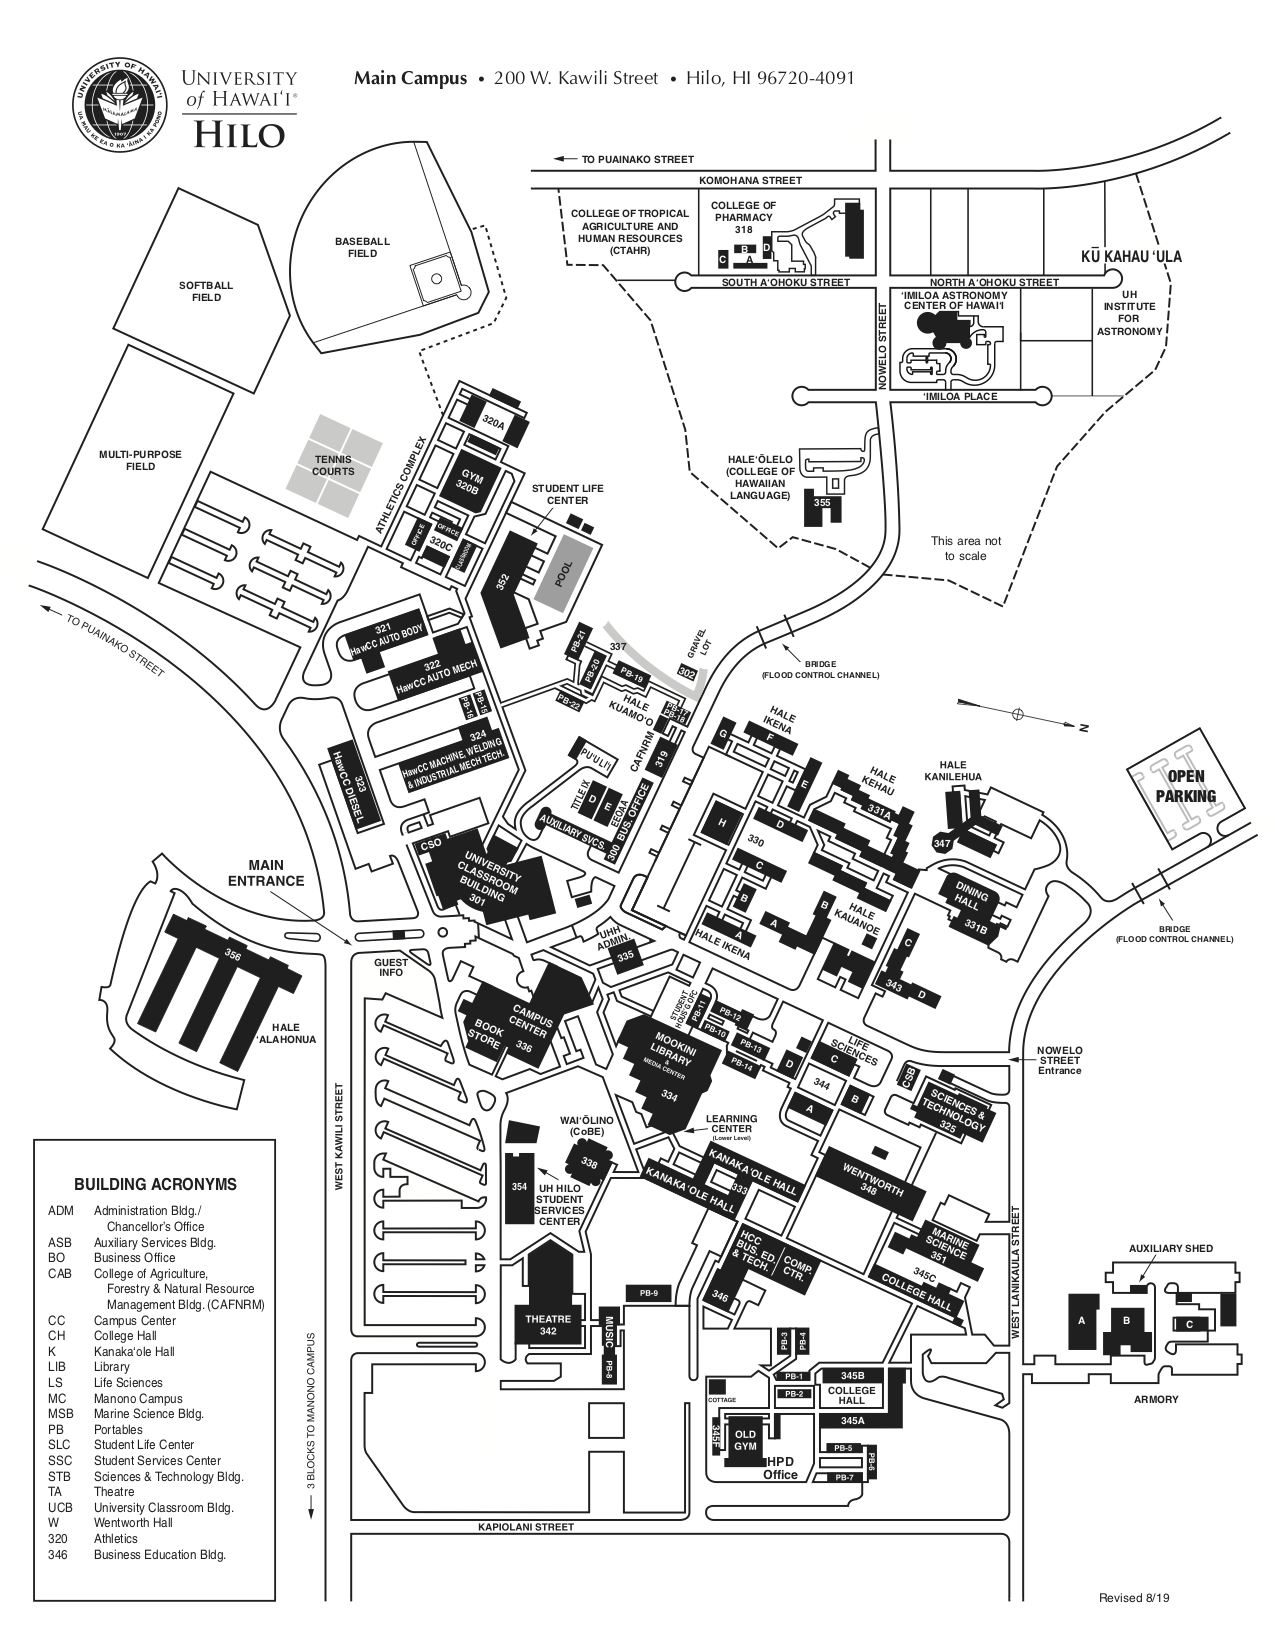 Campus Maps on ut arlington campus map pdf, cu boulder campus map pdf, iu bloomington campus map pdf, ucla campus map pdf, cwru campus map pdf, ysu campus map pdf, csub campus map pdf, sjsu campus map pdf, rollins college campus map pdf, csula campus map pdf, uw-madison campus map pdf, umass boston campus map pdf, usc campus map pdf, umass amherst campus map pdf, uc davis campus map pdf, iub campus map pdf, csuf campus map pdf, uccs campus map pdf,